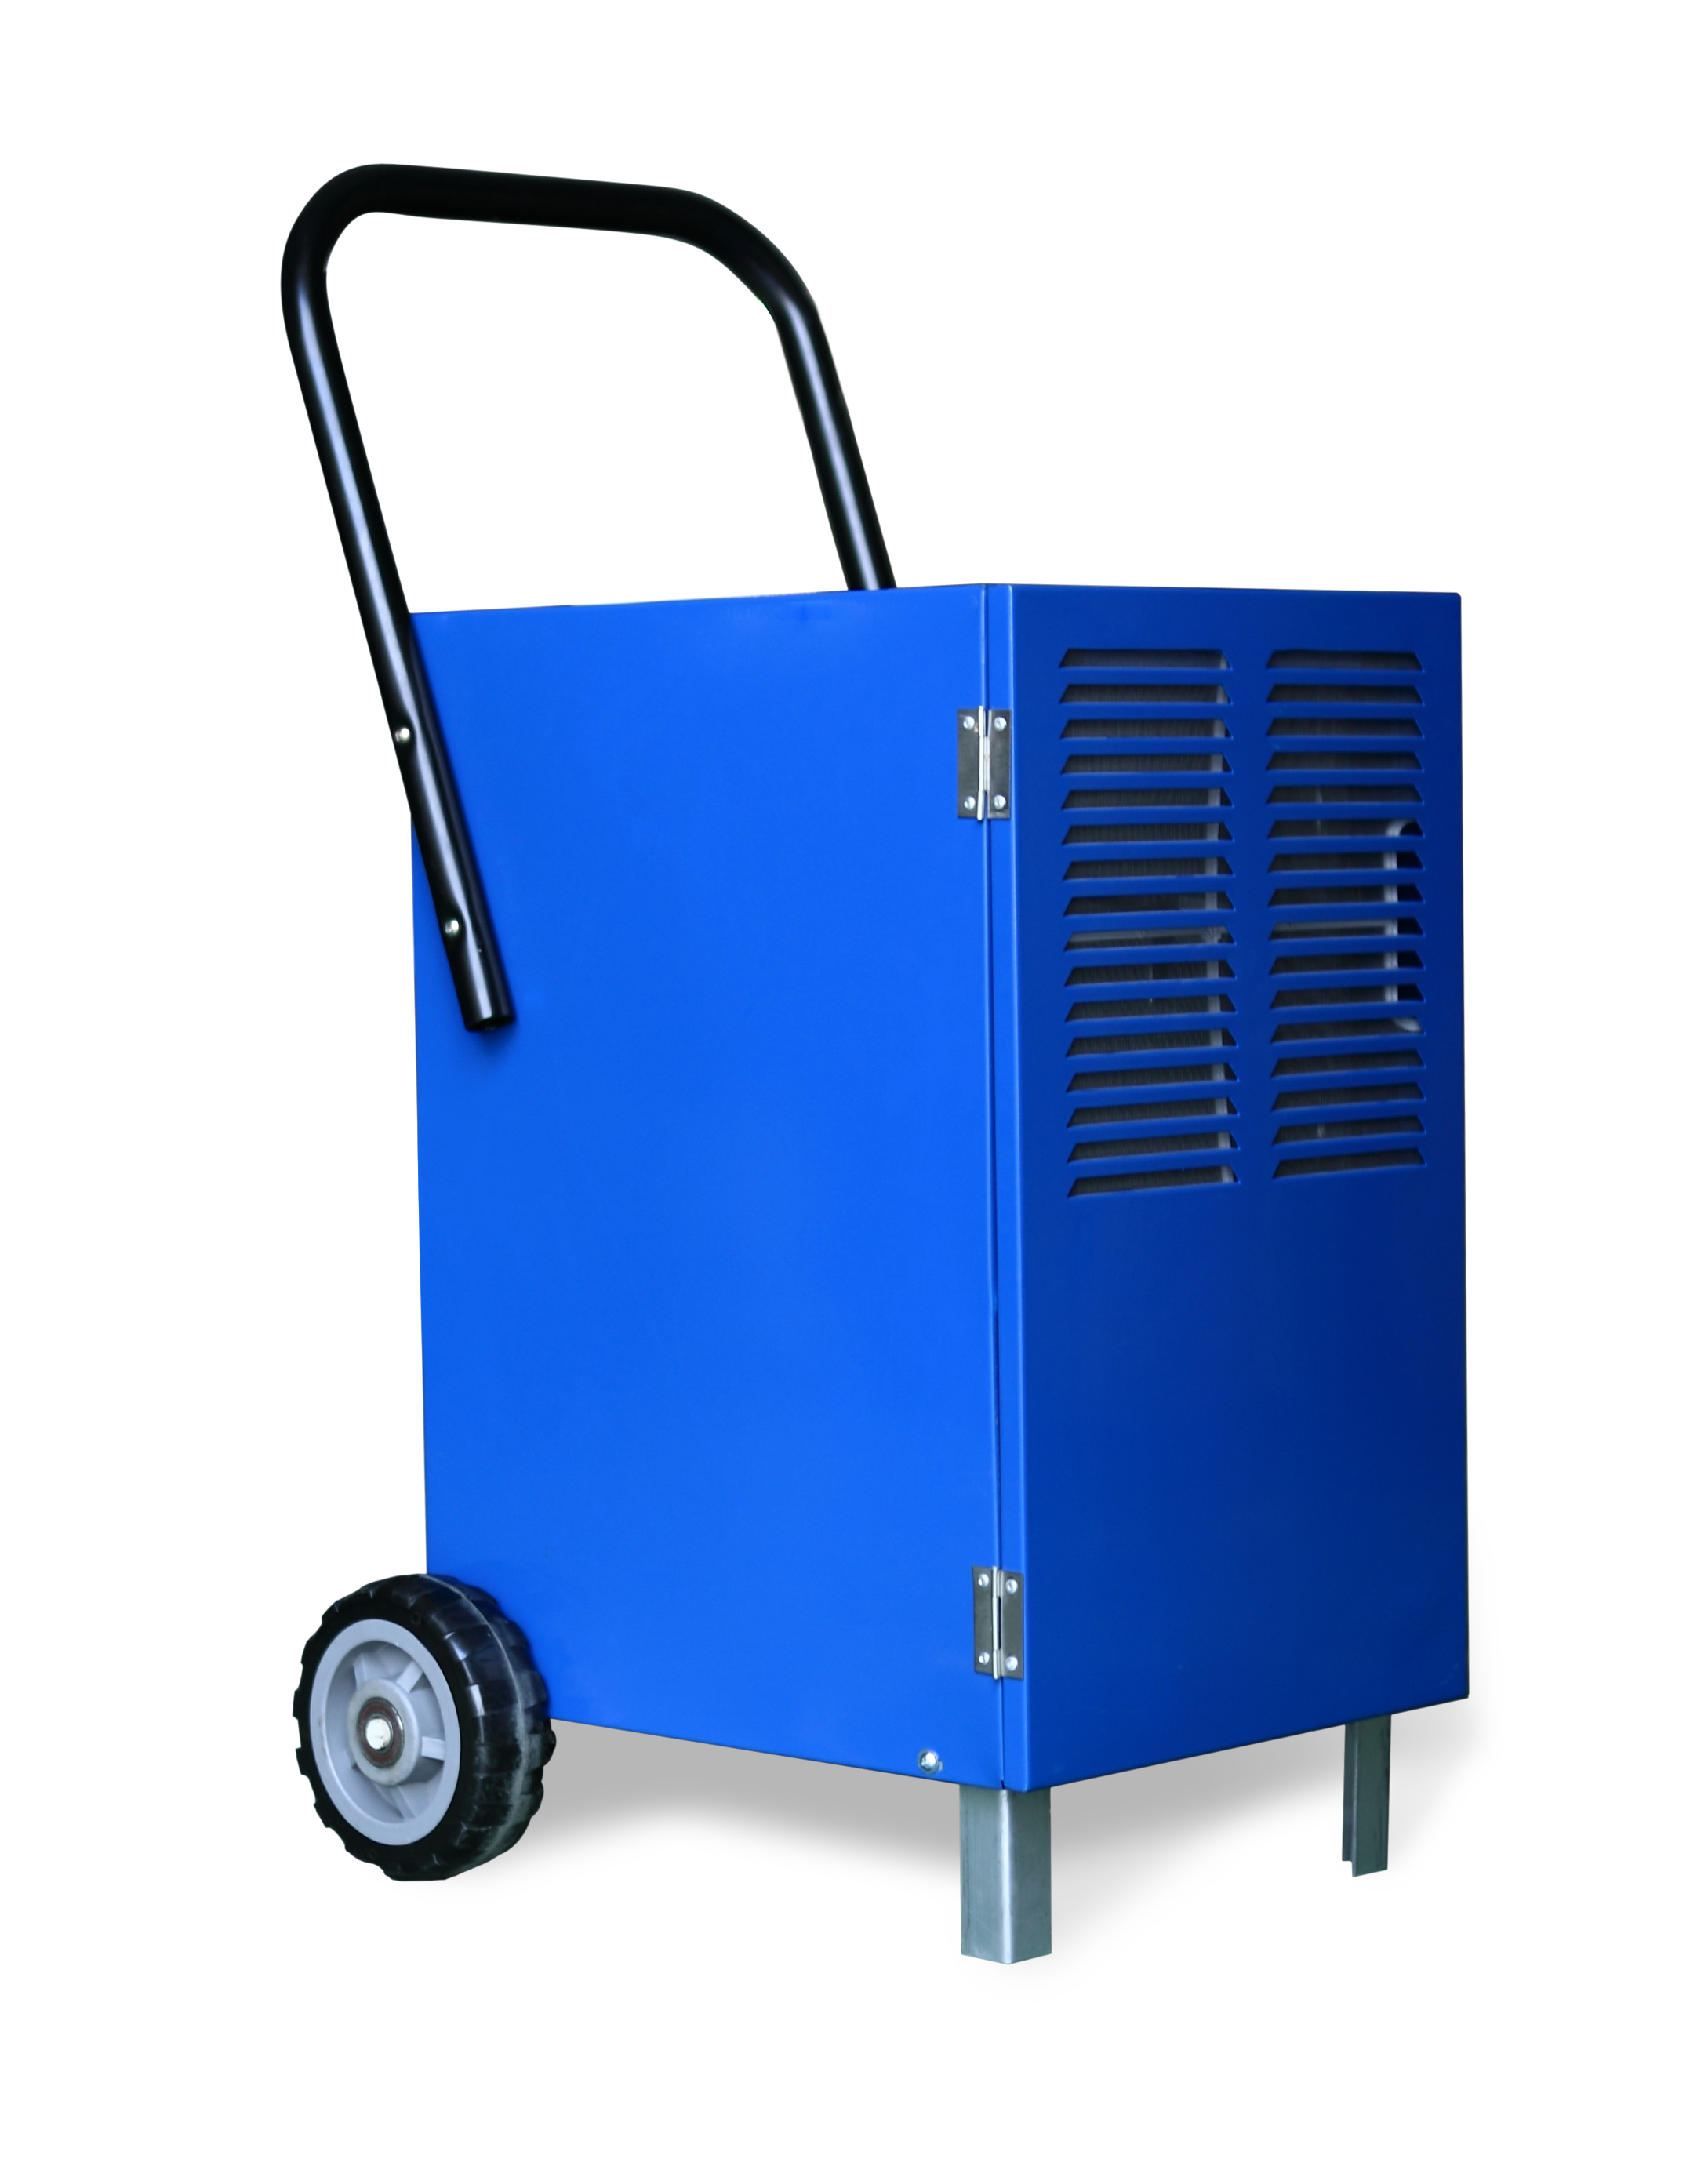 Industrial Building dehumidifier Ideal for drying out Flood or water  #06318E